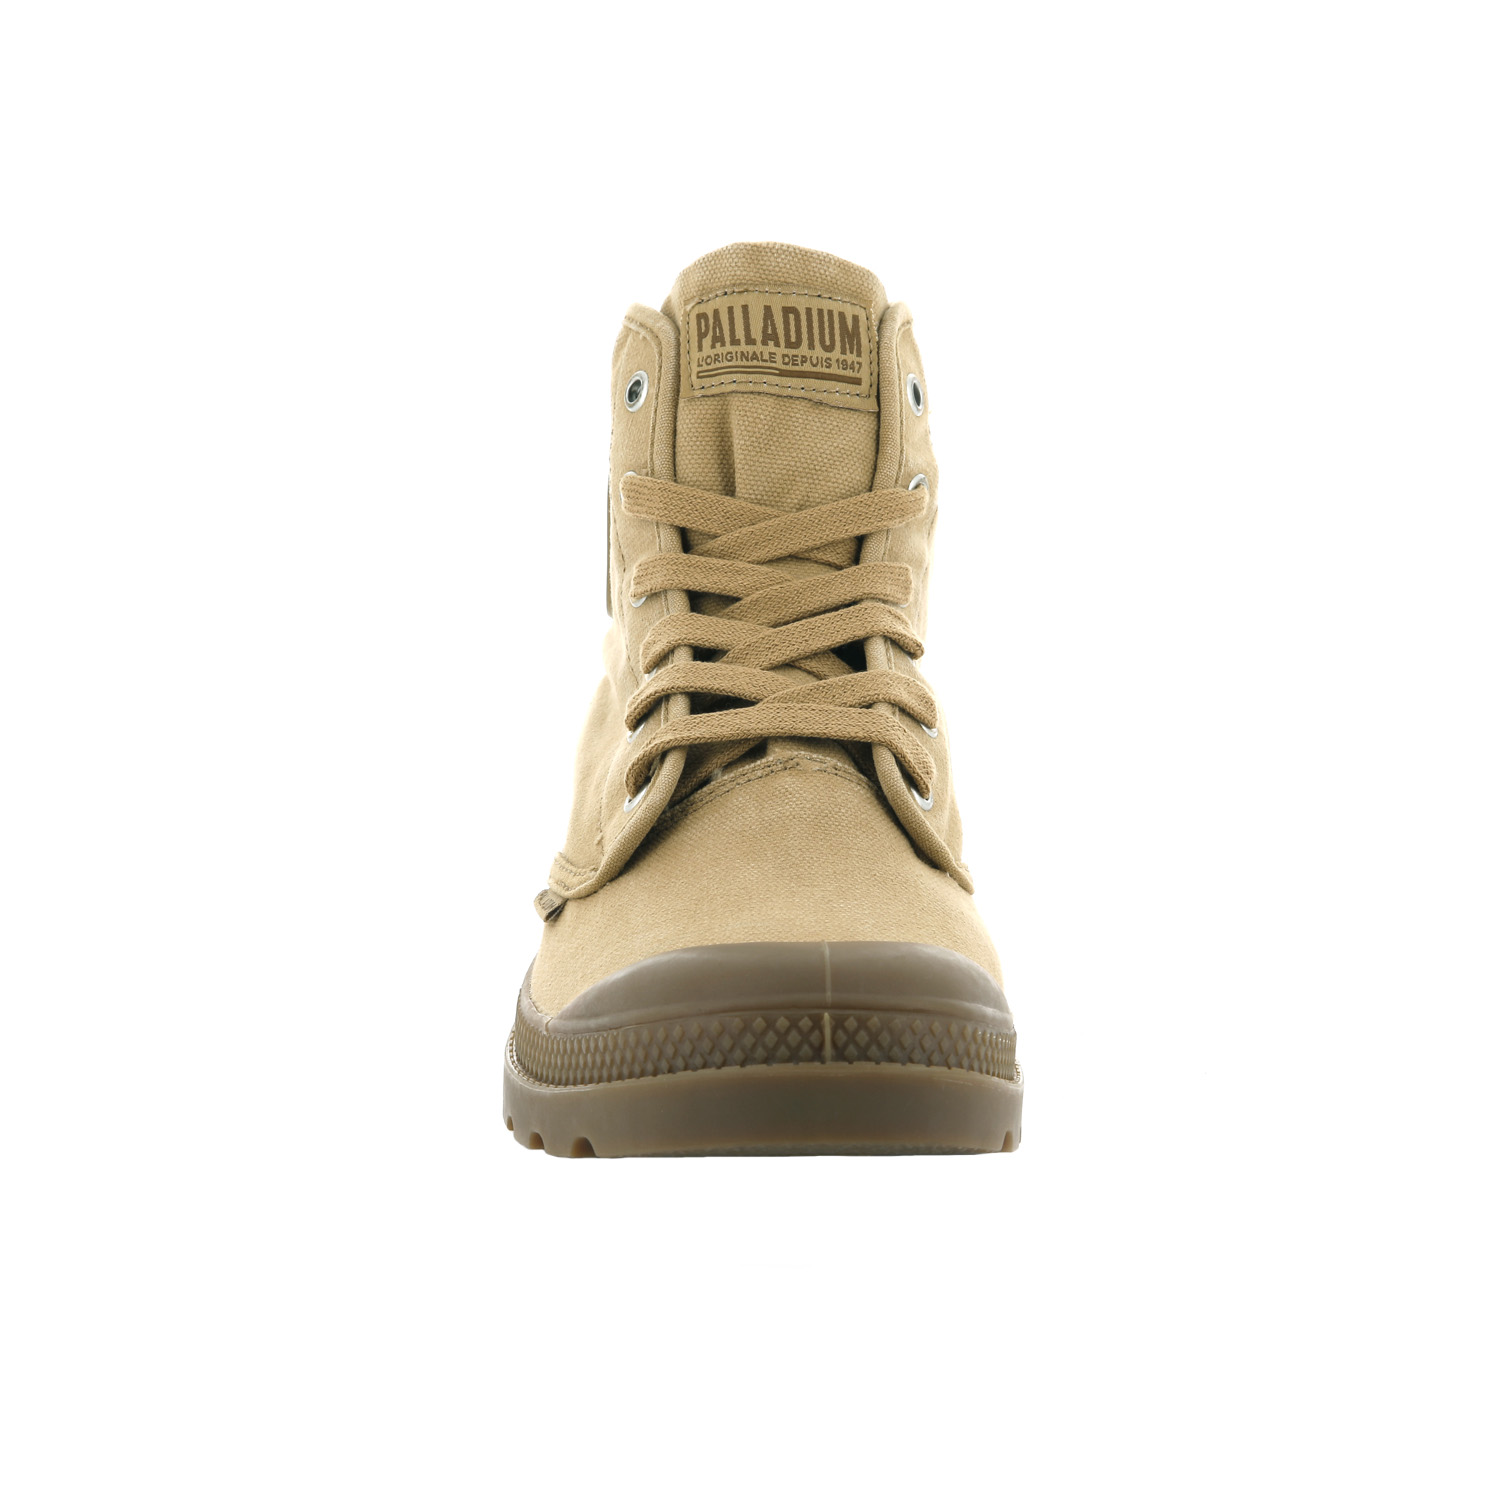 Palladium-Mens-Pampa-Hi-Canvas-Shoes-Casual-Walking-High-Top-Lace-Up-Ankle-Boots thumbnail 46